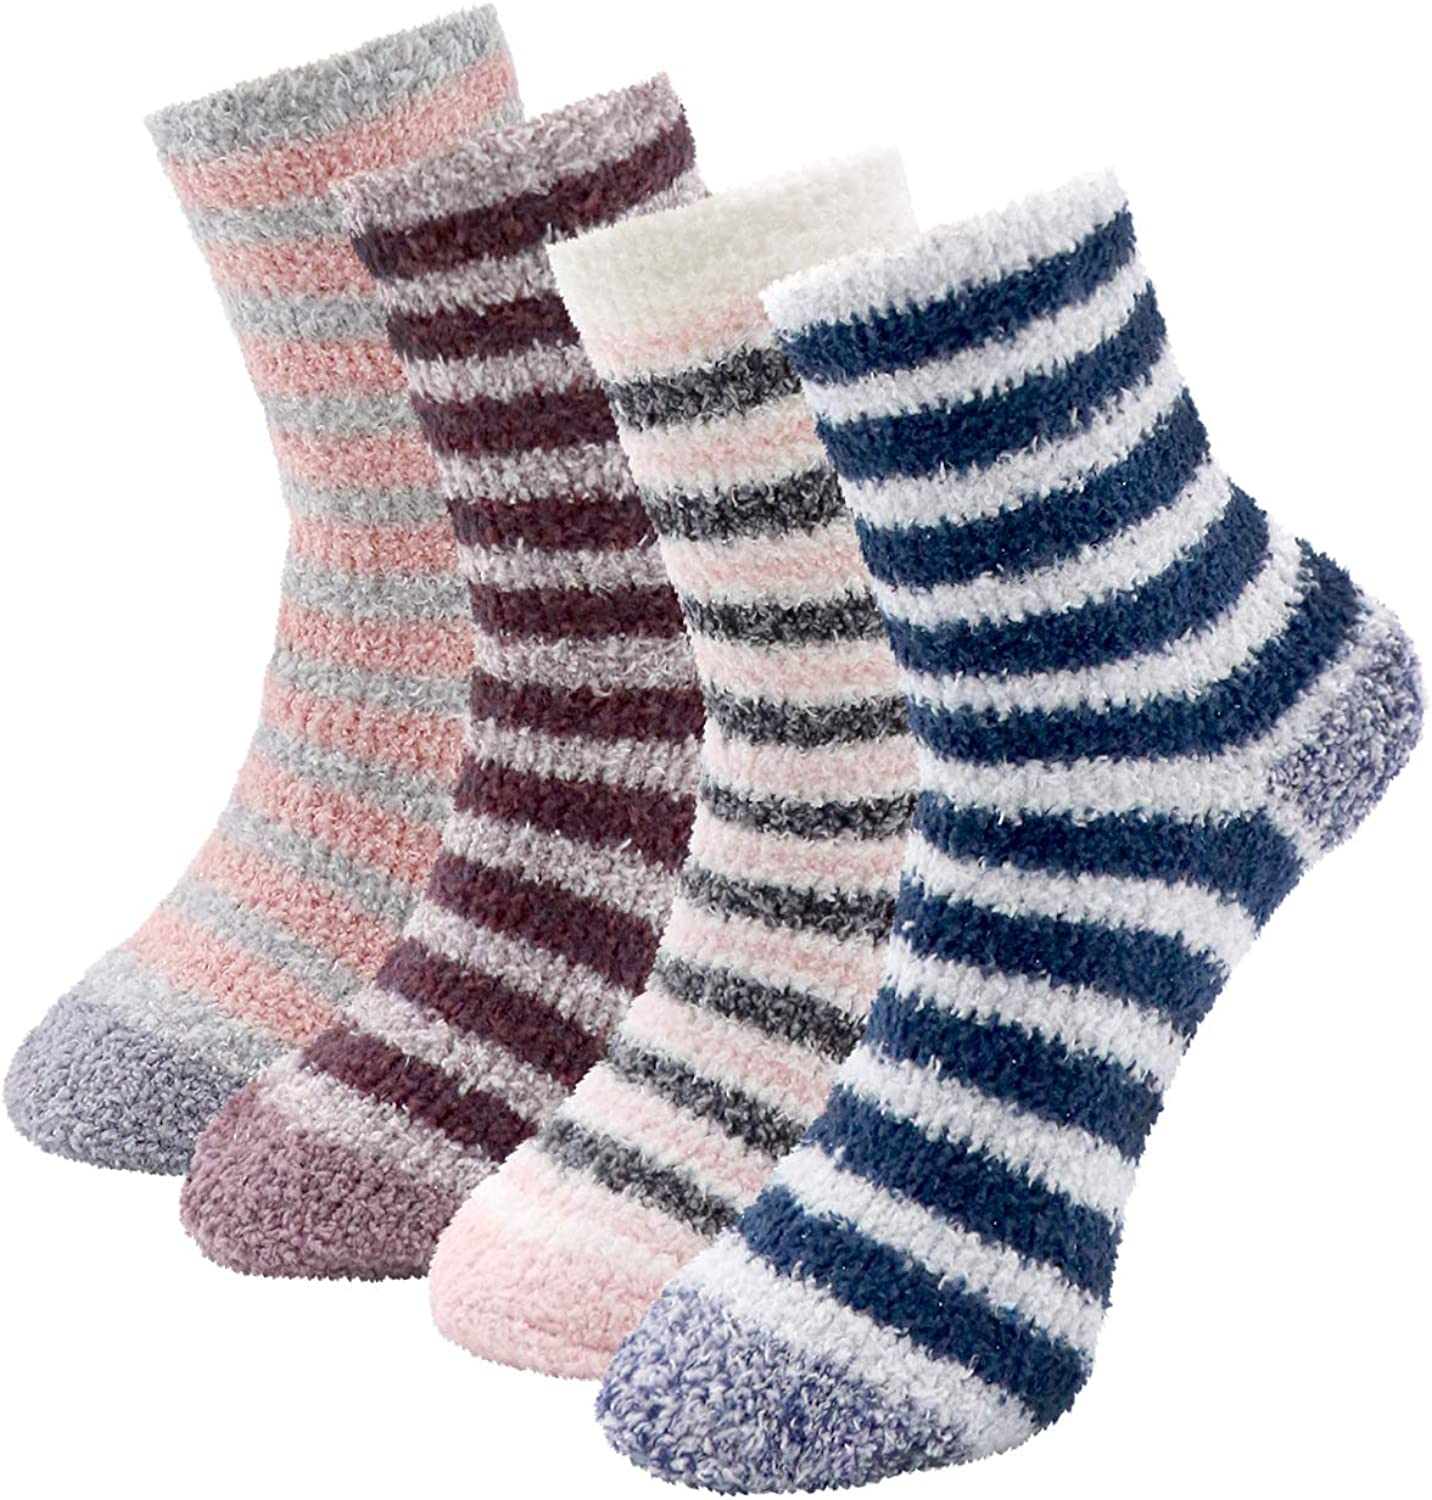 DICUIRD Fuzzy Socks for Women Winter Warm Soft Fluffy Socks for Home Sleeping Indoor Thick Cozy Plush Sock, 4 Pairs